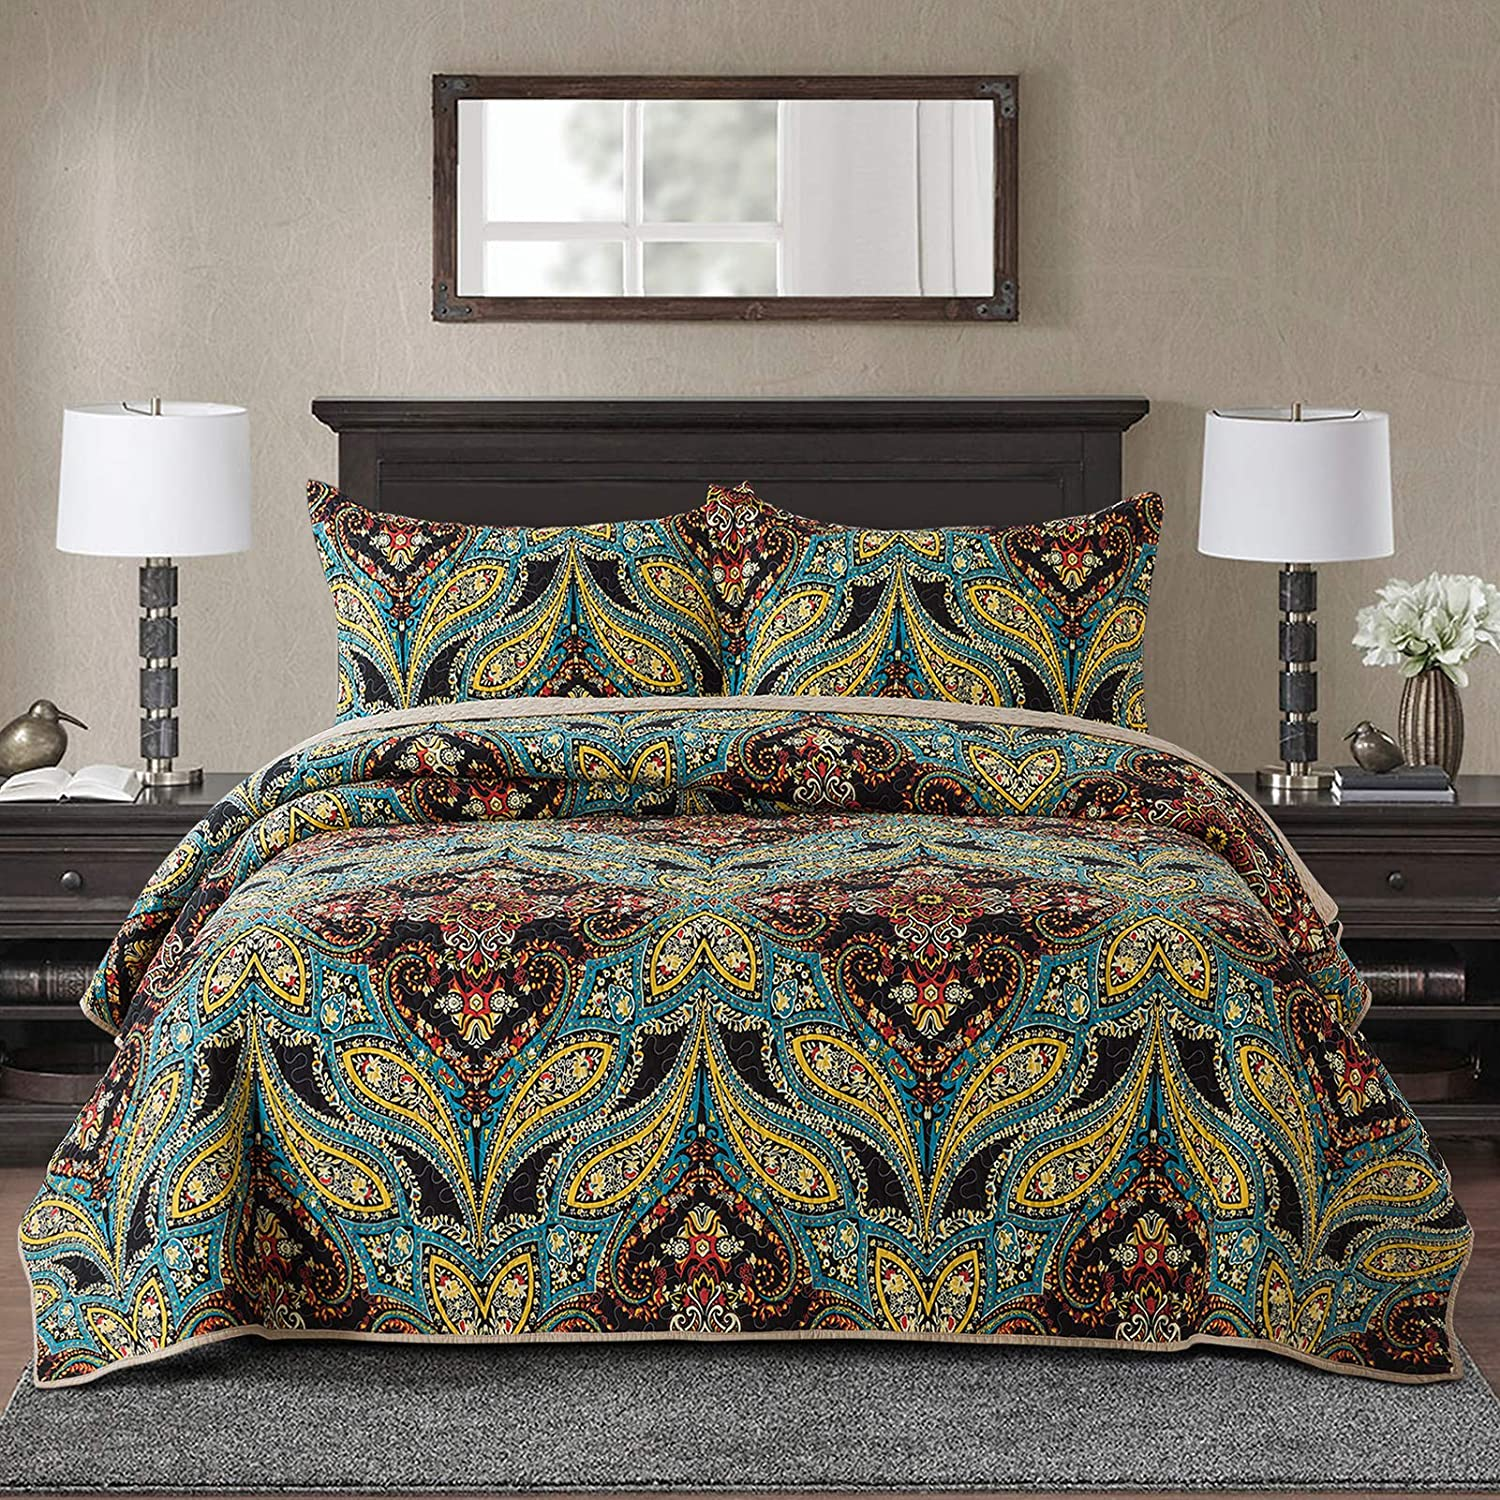 NEWLAKE Cotton Bedspread Quilt Coverle Patchwork Super special price Sets-Reversible Miami Mall